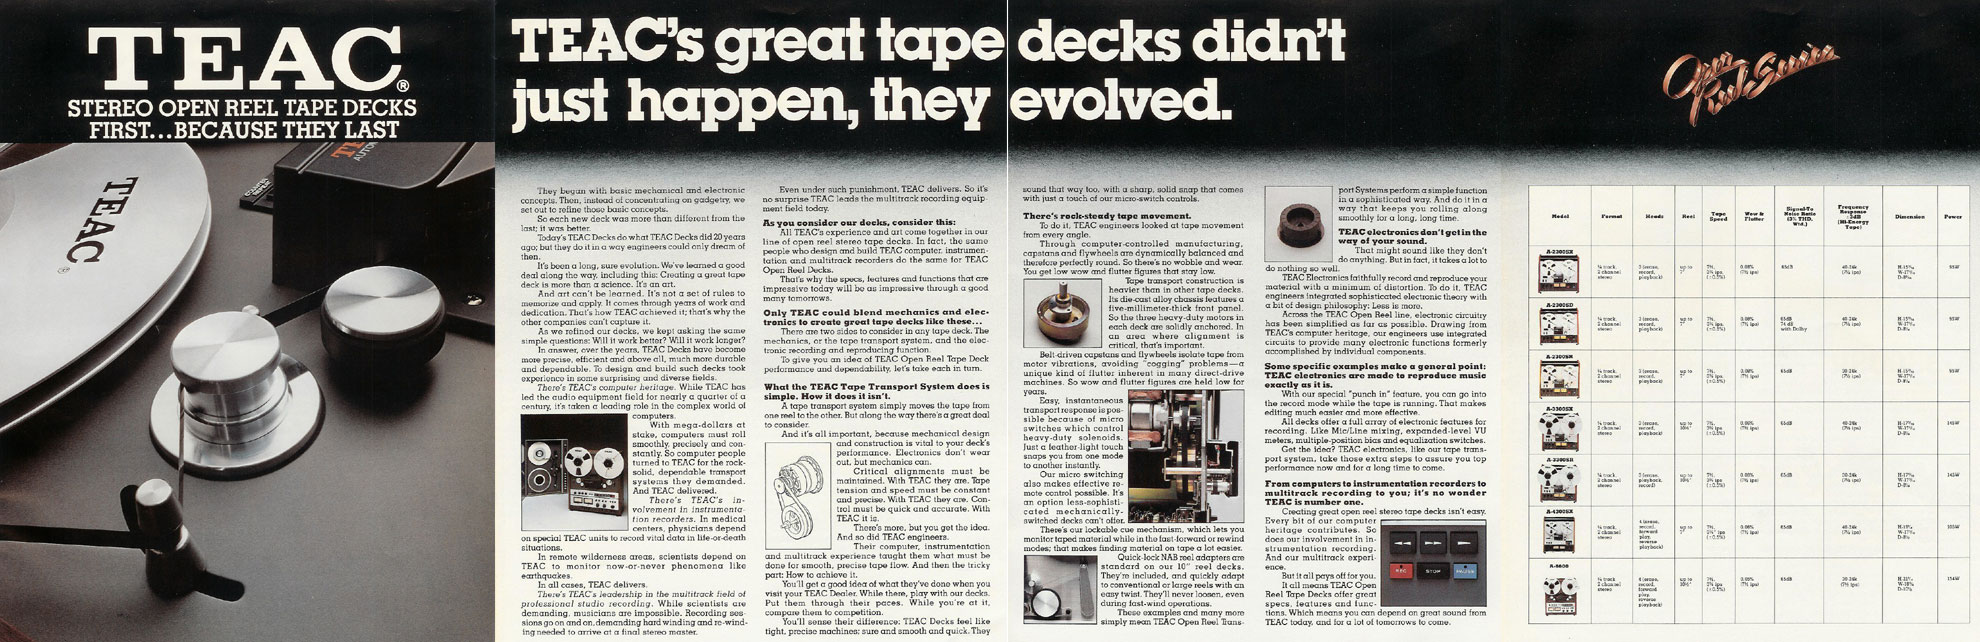 1977 Teac reel tape recorder brochure